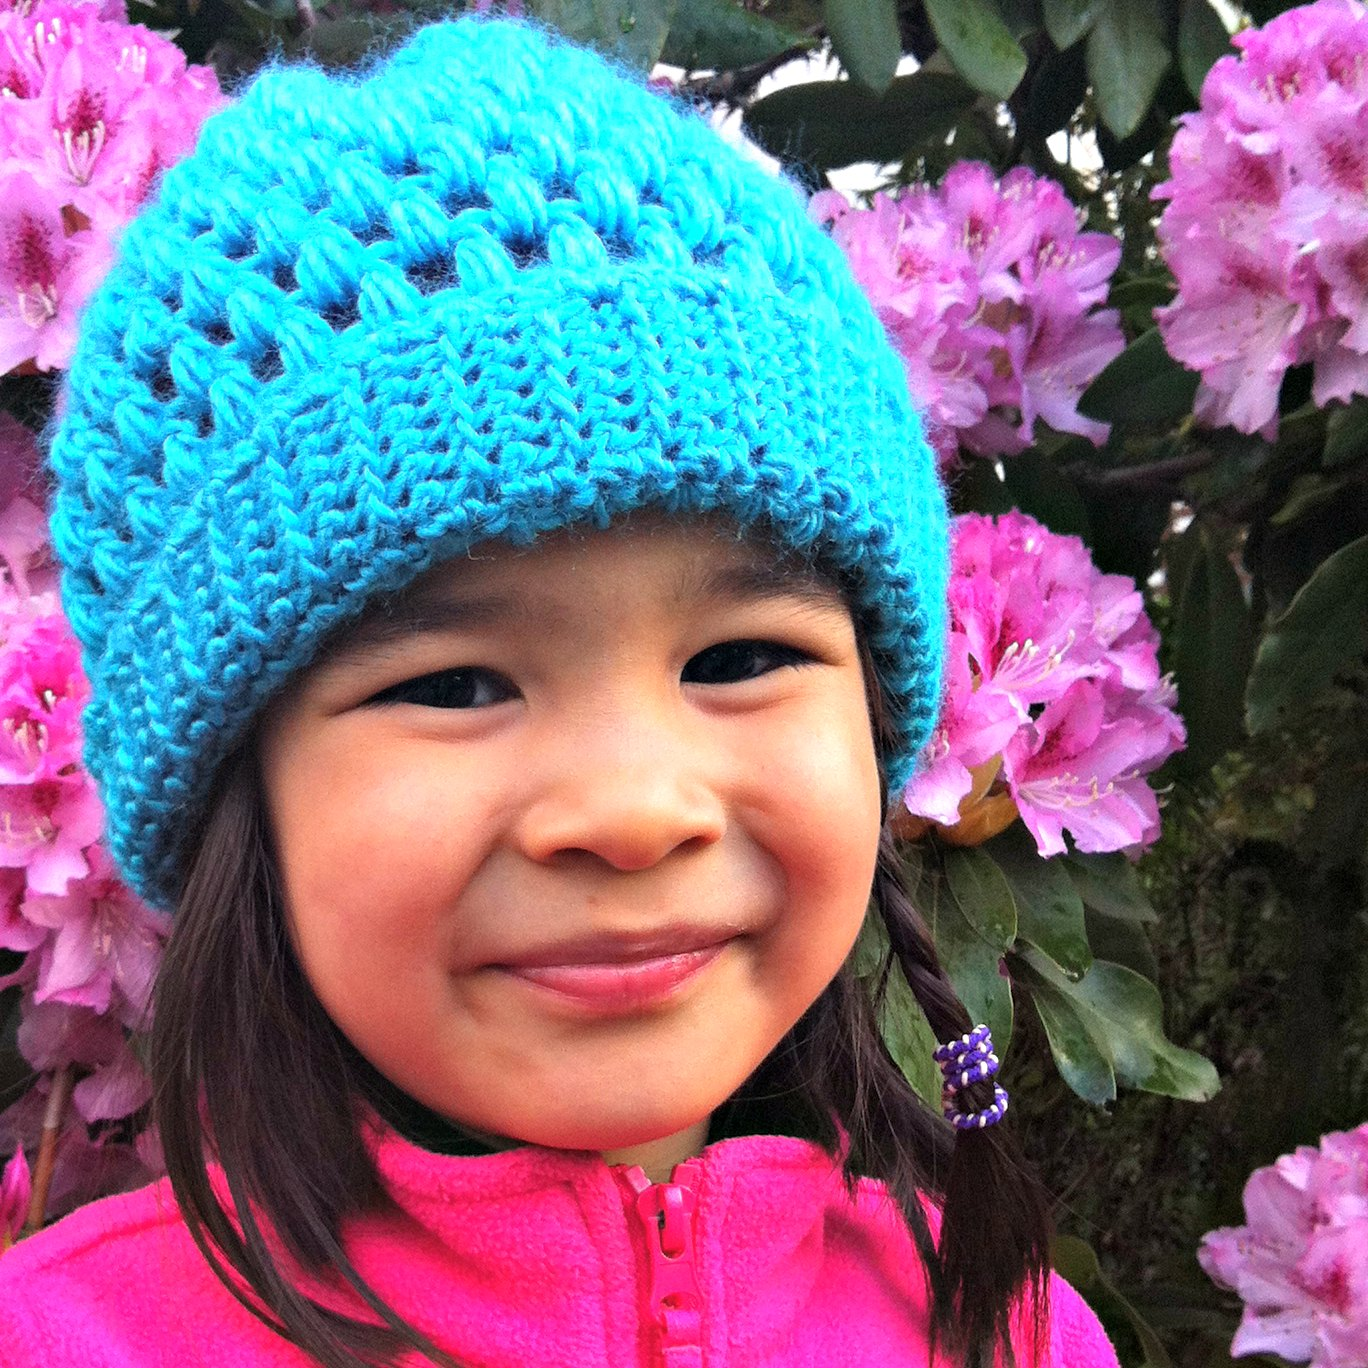 Crochet Beanie Pattern For Child : Sew Creative Crocheted Kids Slouch Hat Pattern- Great for ...